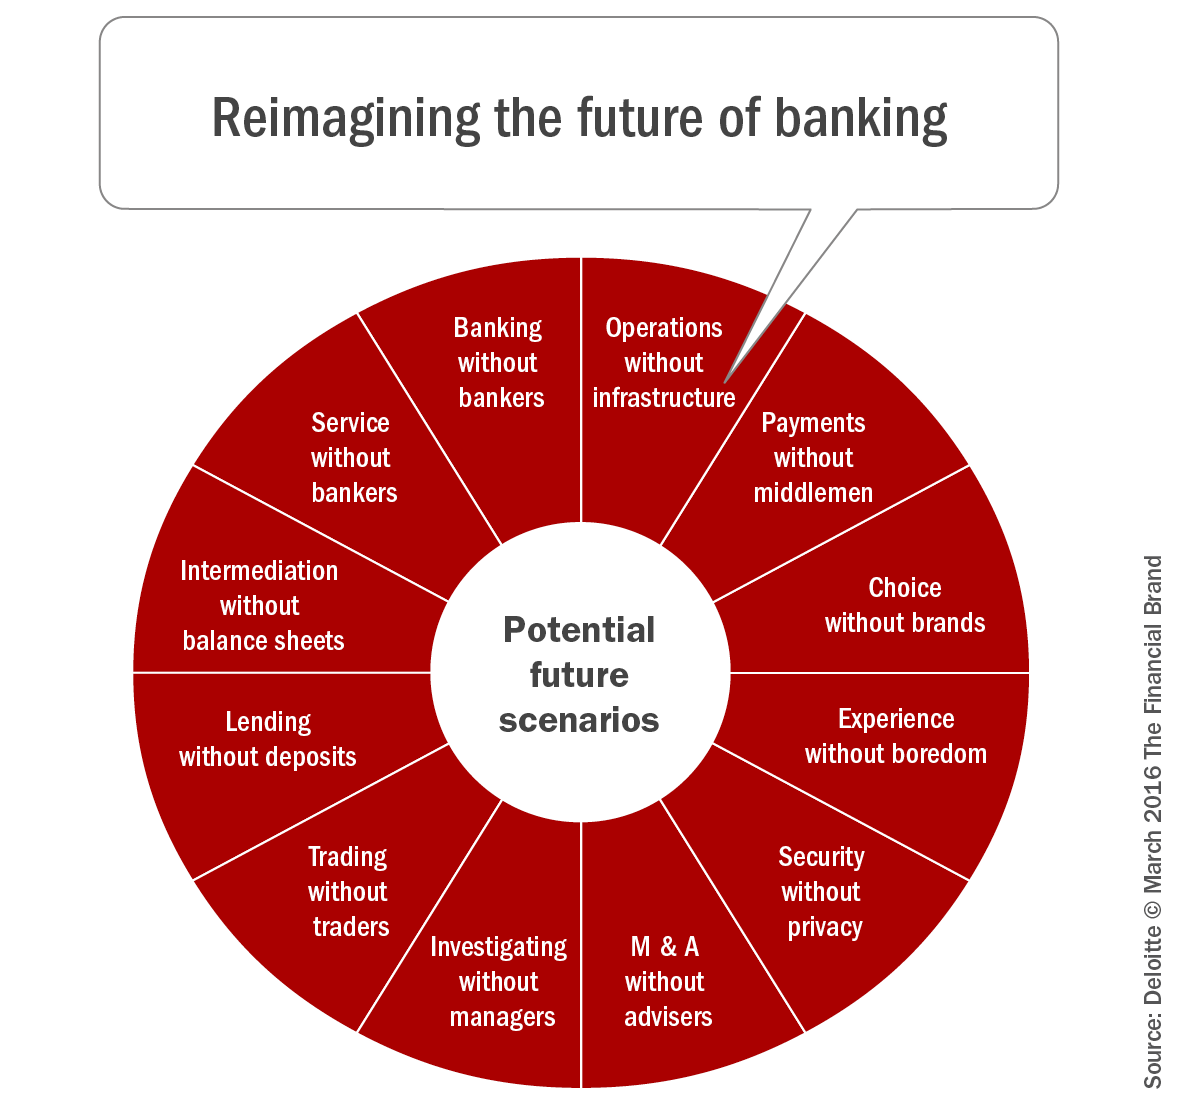 Re-Imagining the future of banking